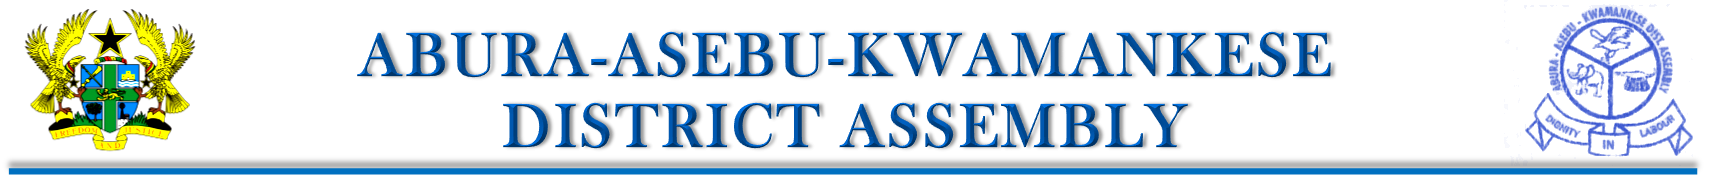 Abura-Asebu-Kwamankese District Assembly Logo